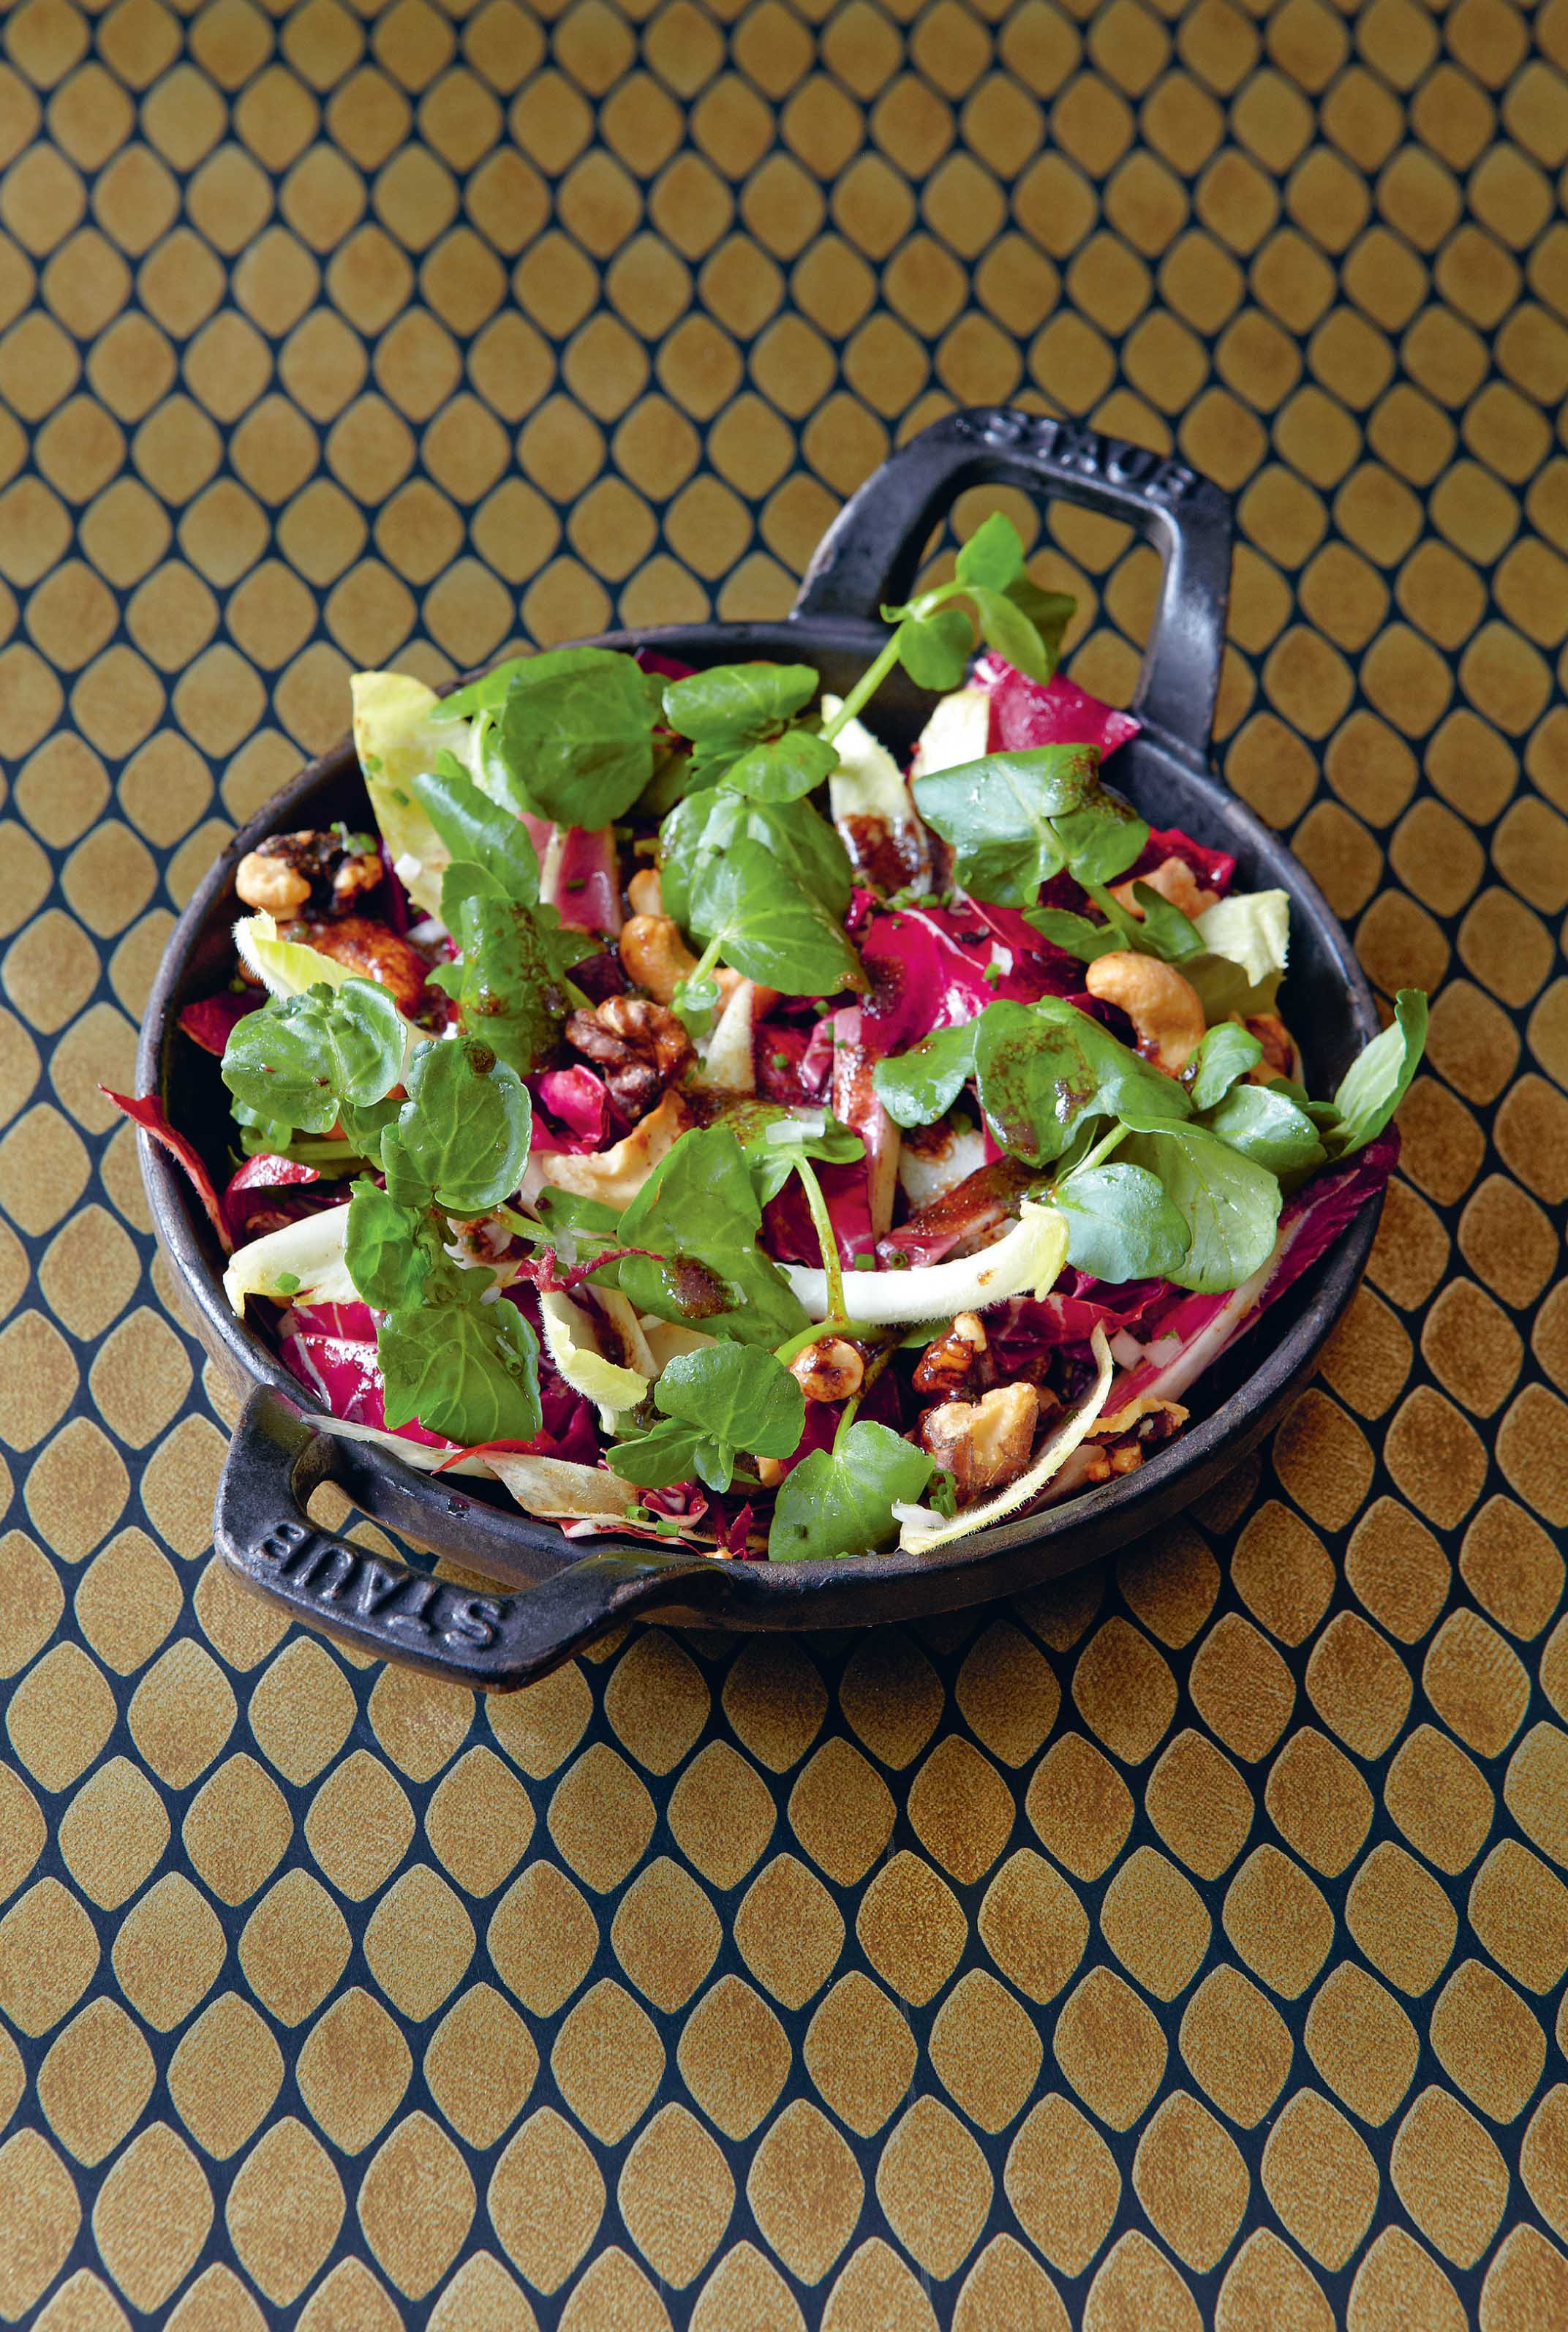 Endive, radicchio & watercress with nuts